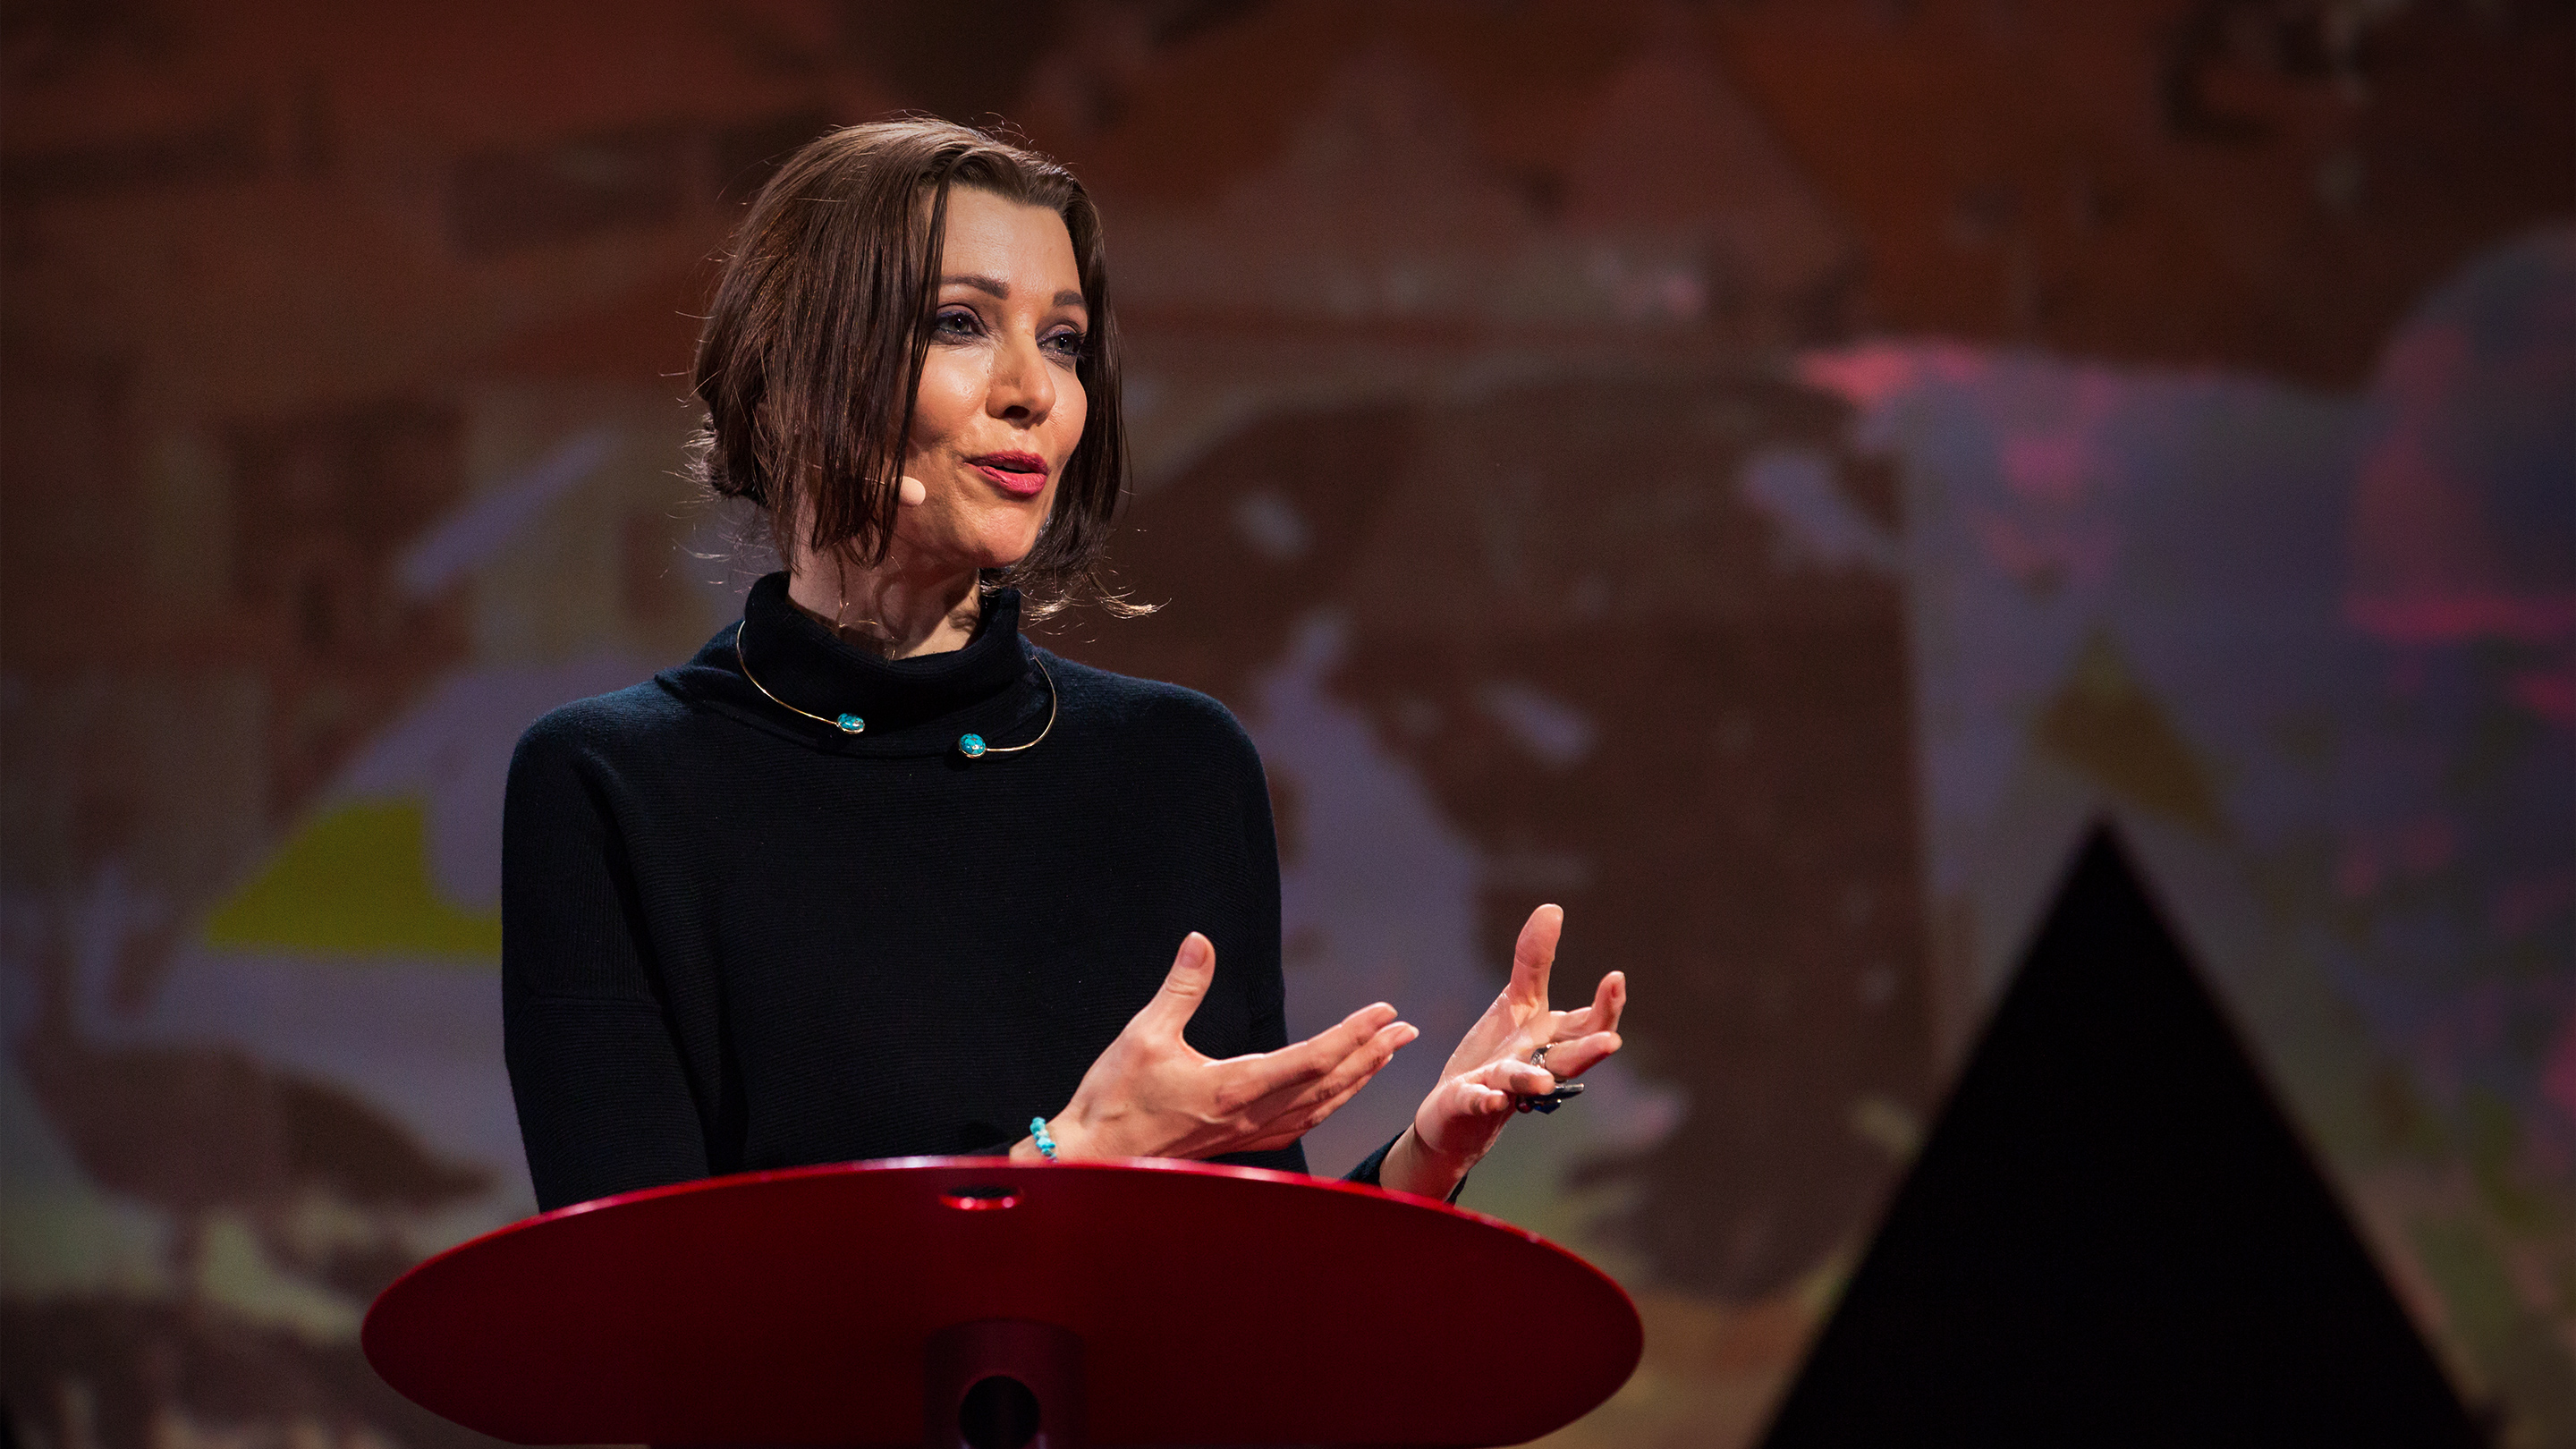 Elif Shafak: How to Remain Sane in the Age of Populism